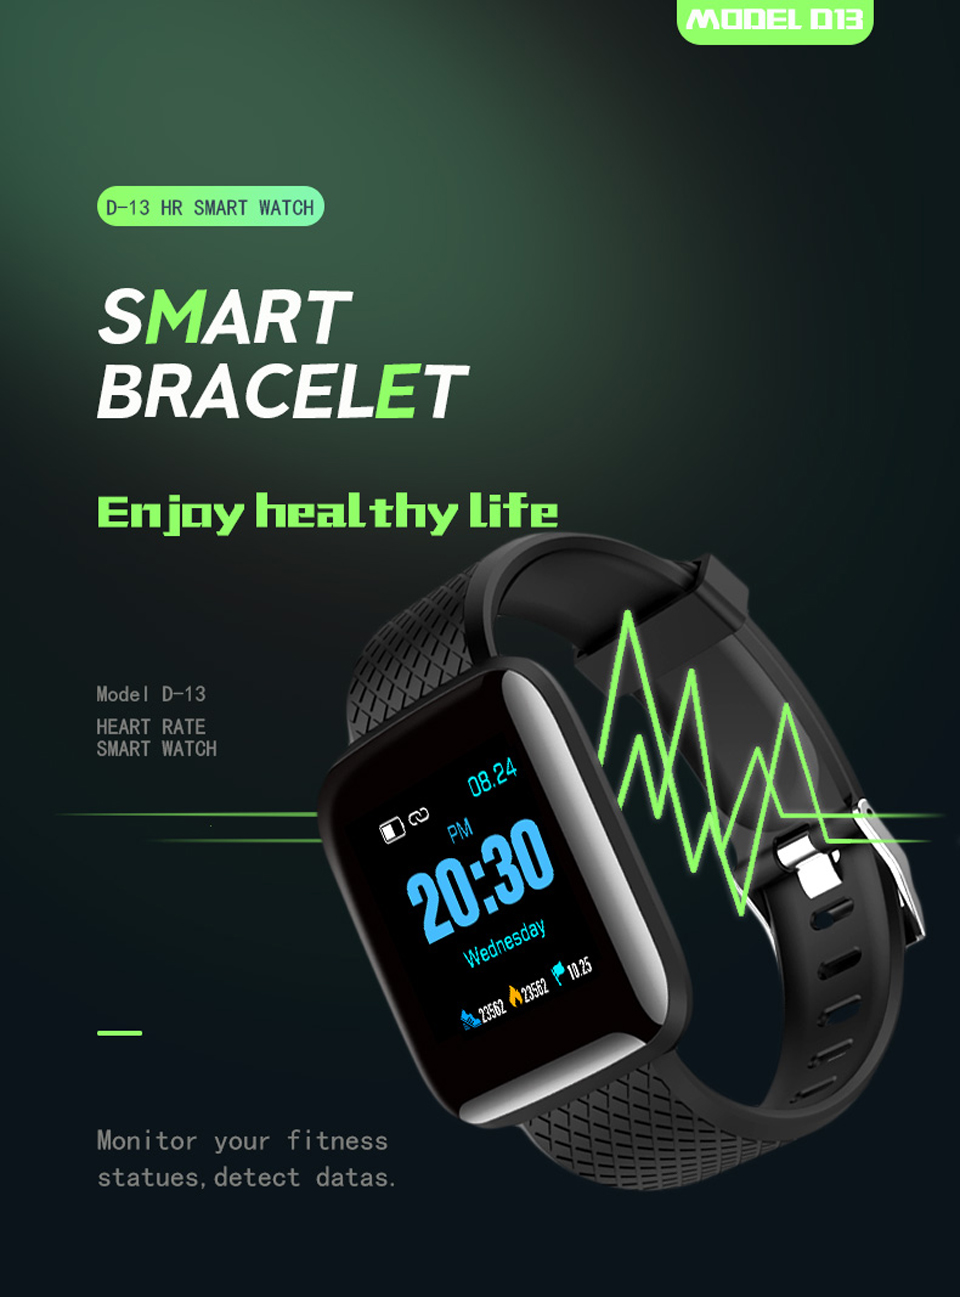 HTB1tG0mXvWG3KVjSZPcq6zkbXXaY D13 Smart Watch Bracelet Heart Rate Tracker Pedometers Blood Pressure IP67 Waterproof 116 Plus Wirstband For IOS Androd PK IWO 8